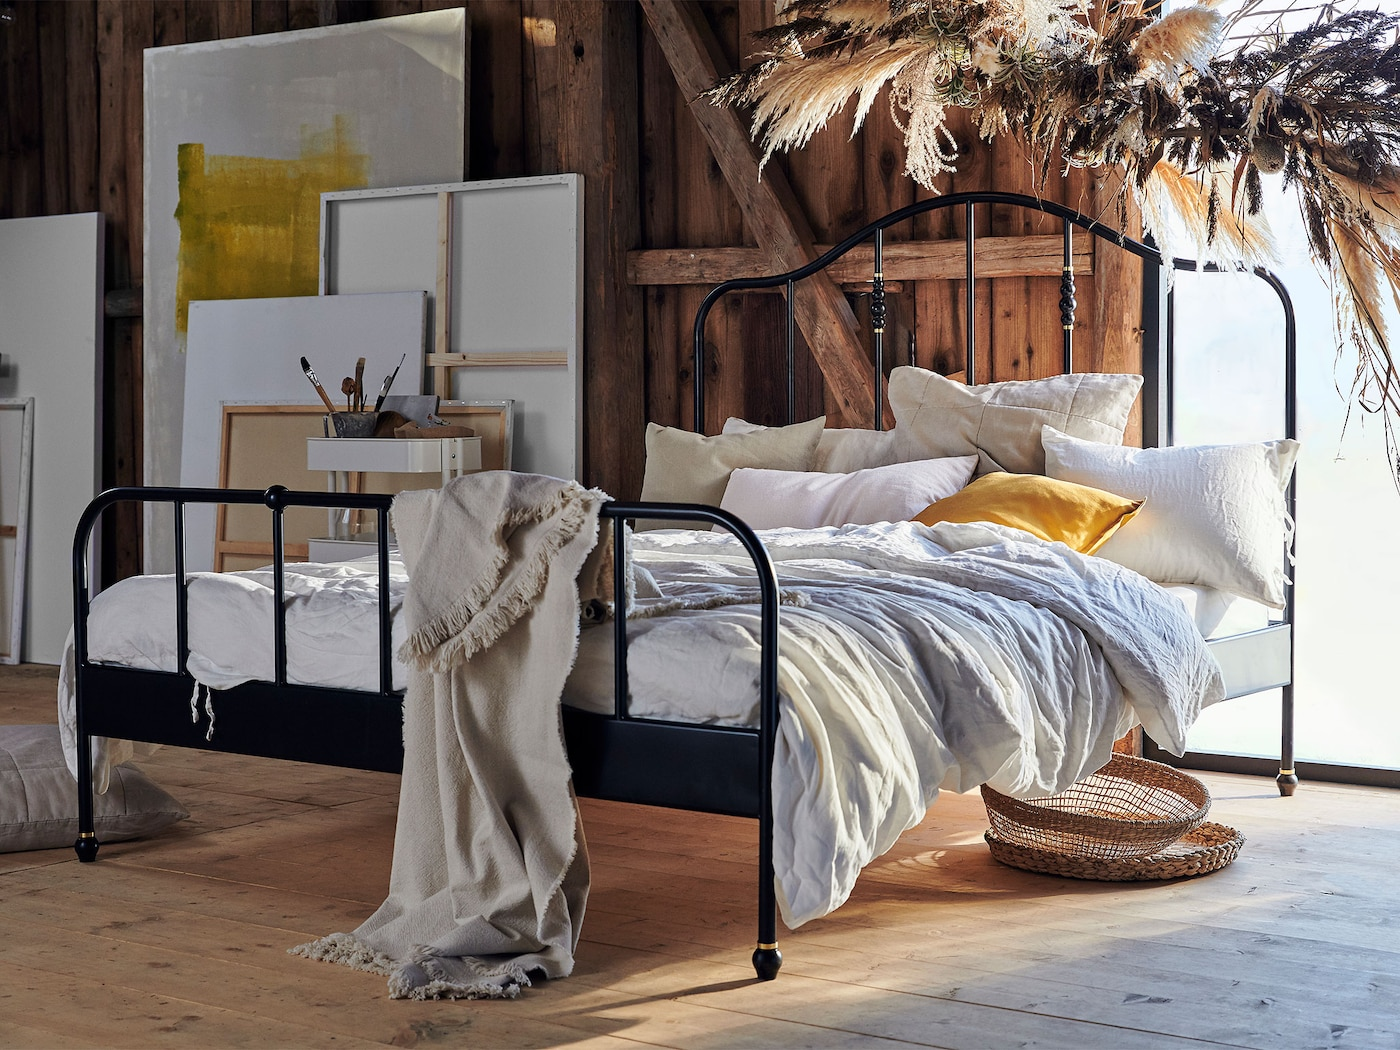 Shown in a rustic loft, the curvy, airy SAGSTUA bed frame in black-coated steel has a tall headboard and easy-to-match look.